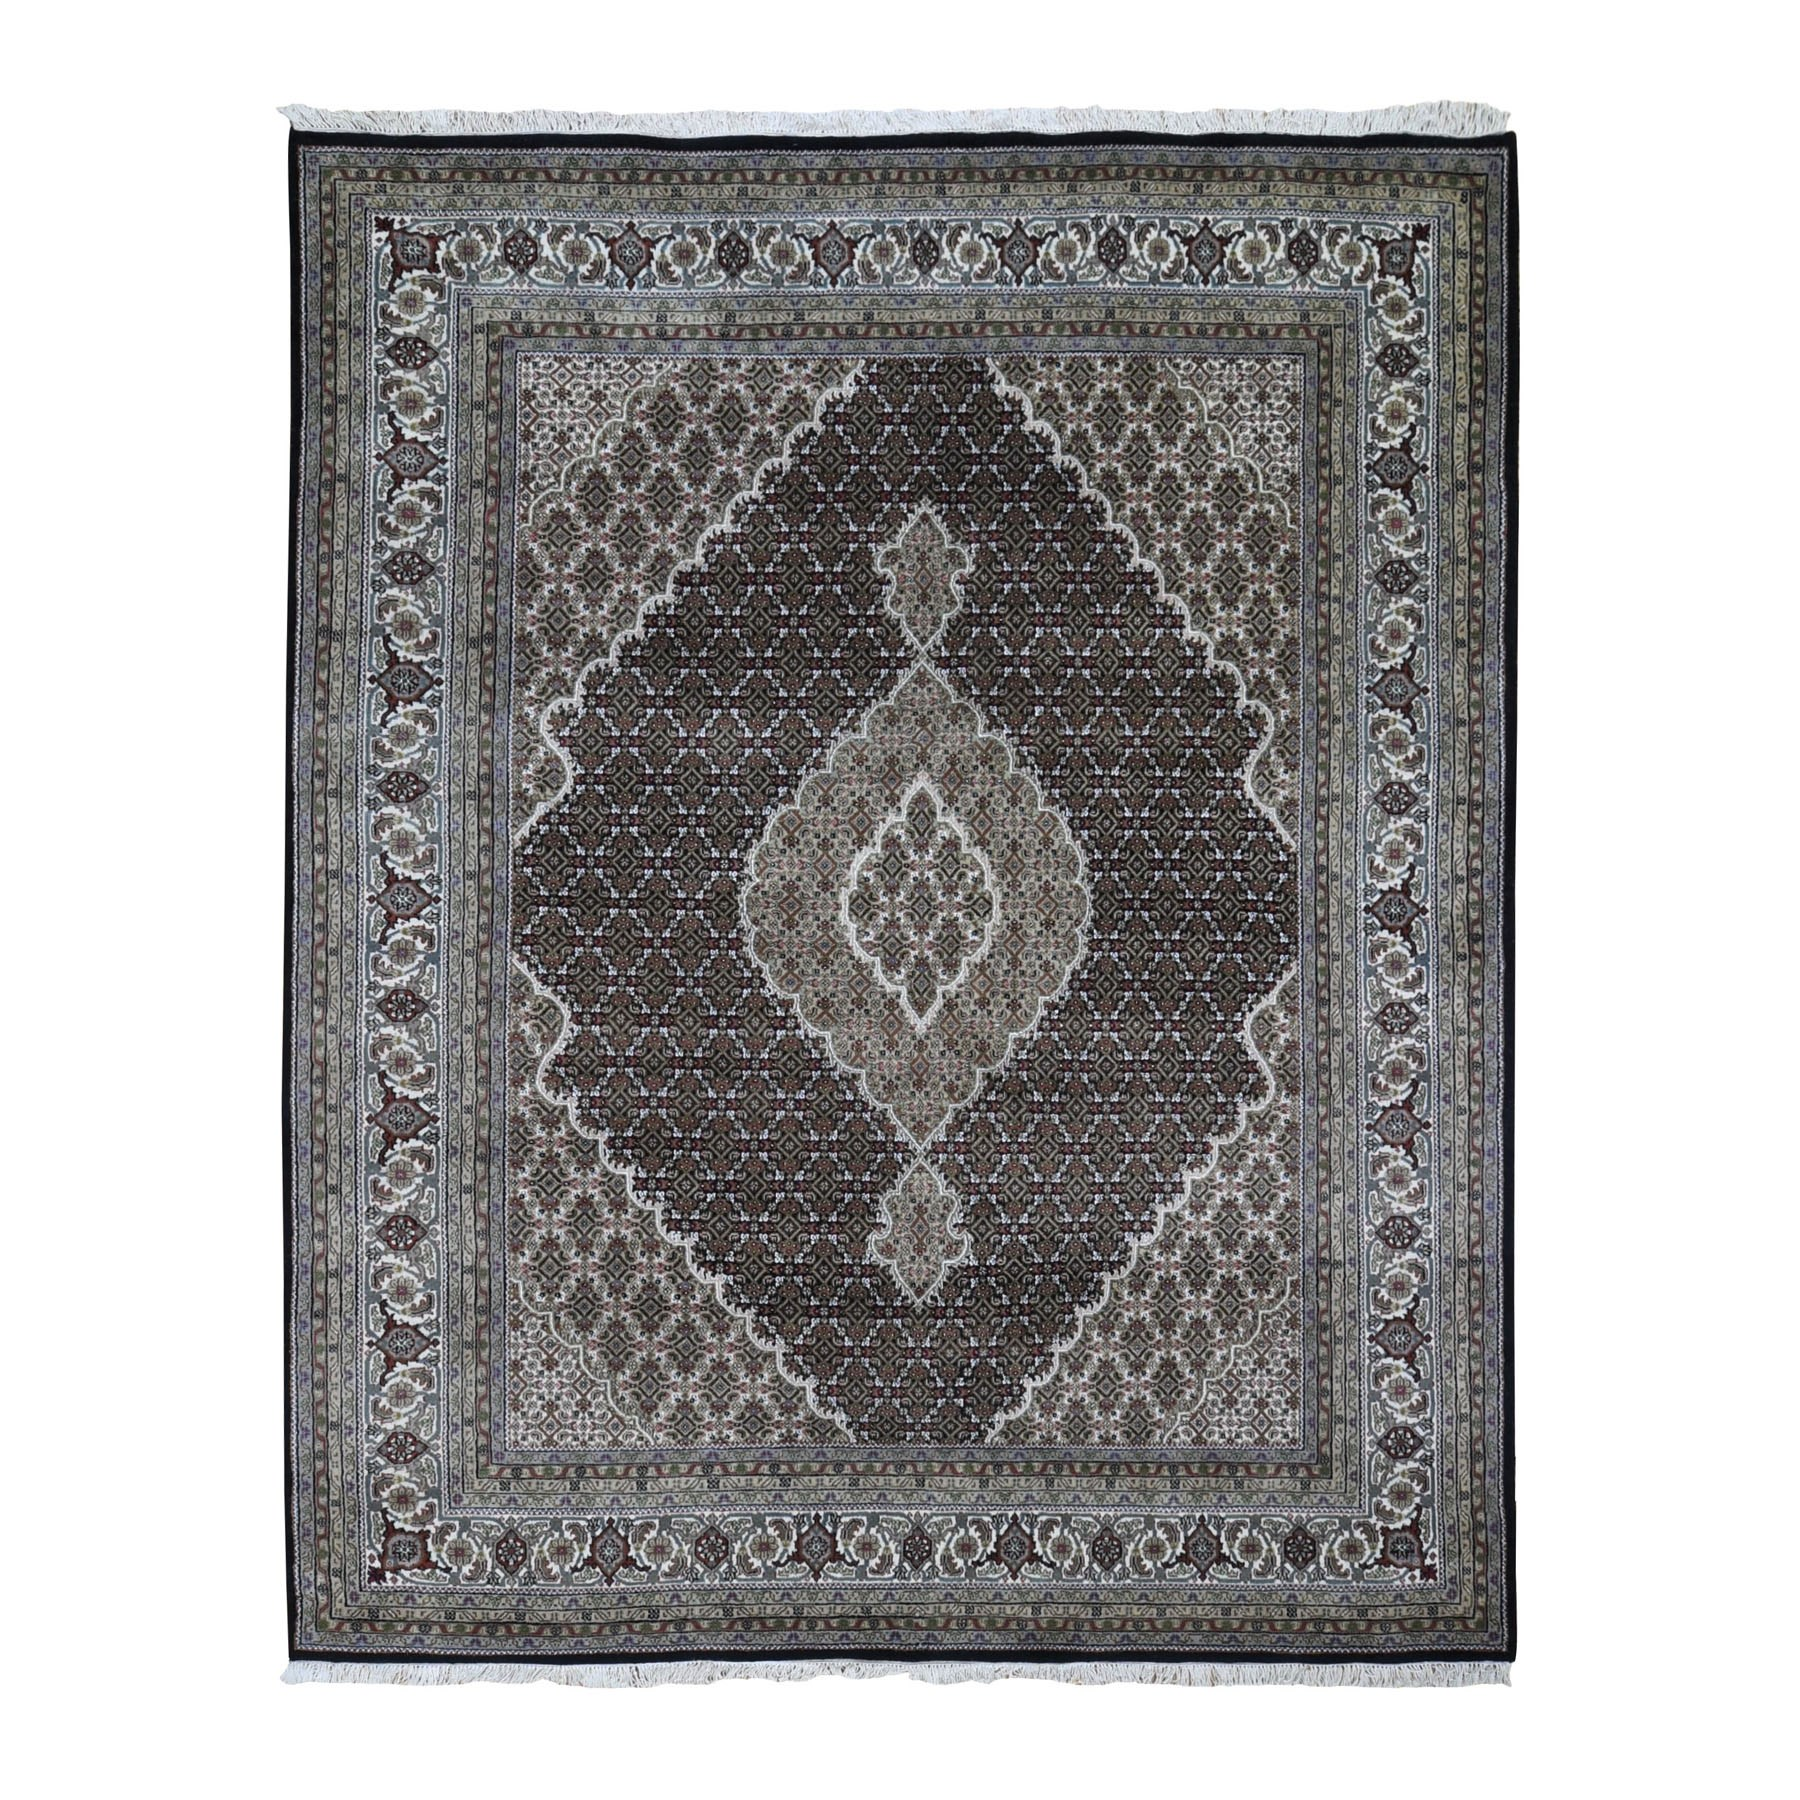 "8'1""x9'10"" Black Tabriz Mahi Wool And Silk Hand Woven Oriental Rug"